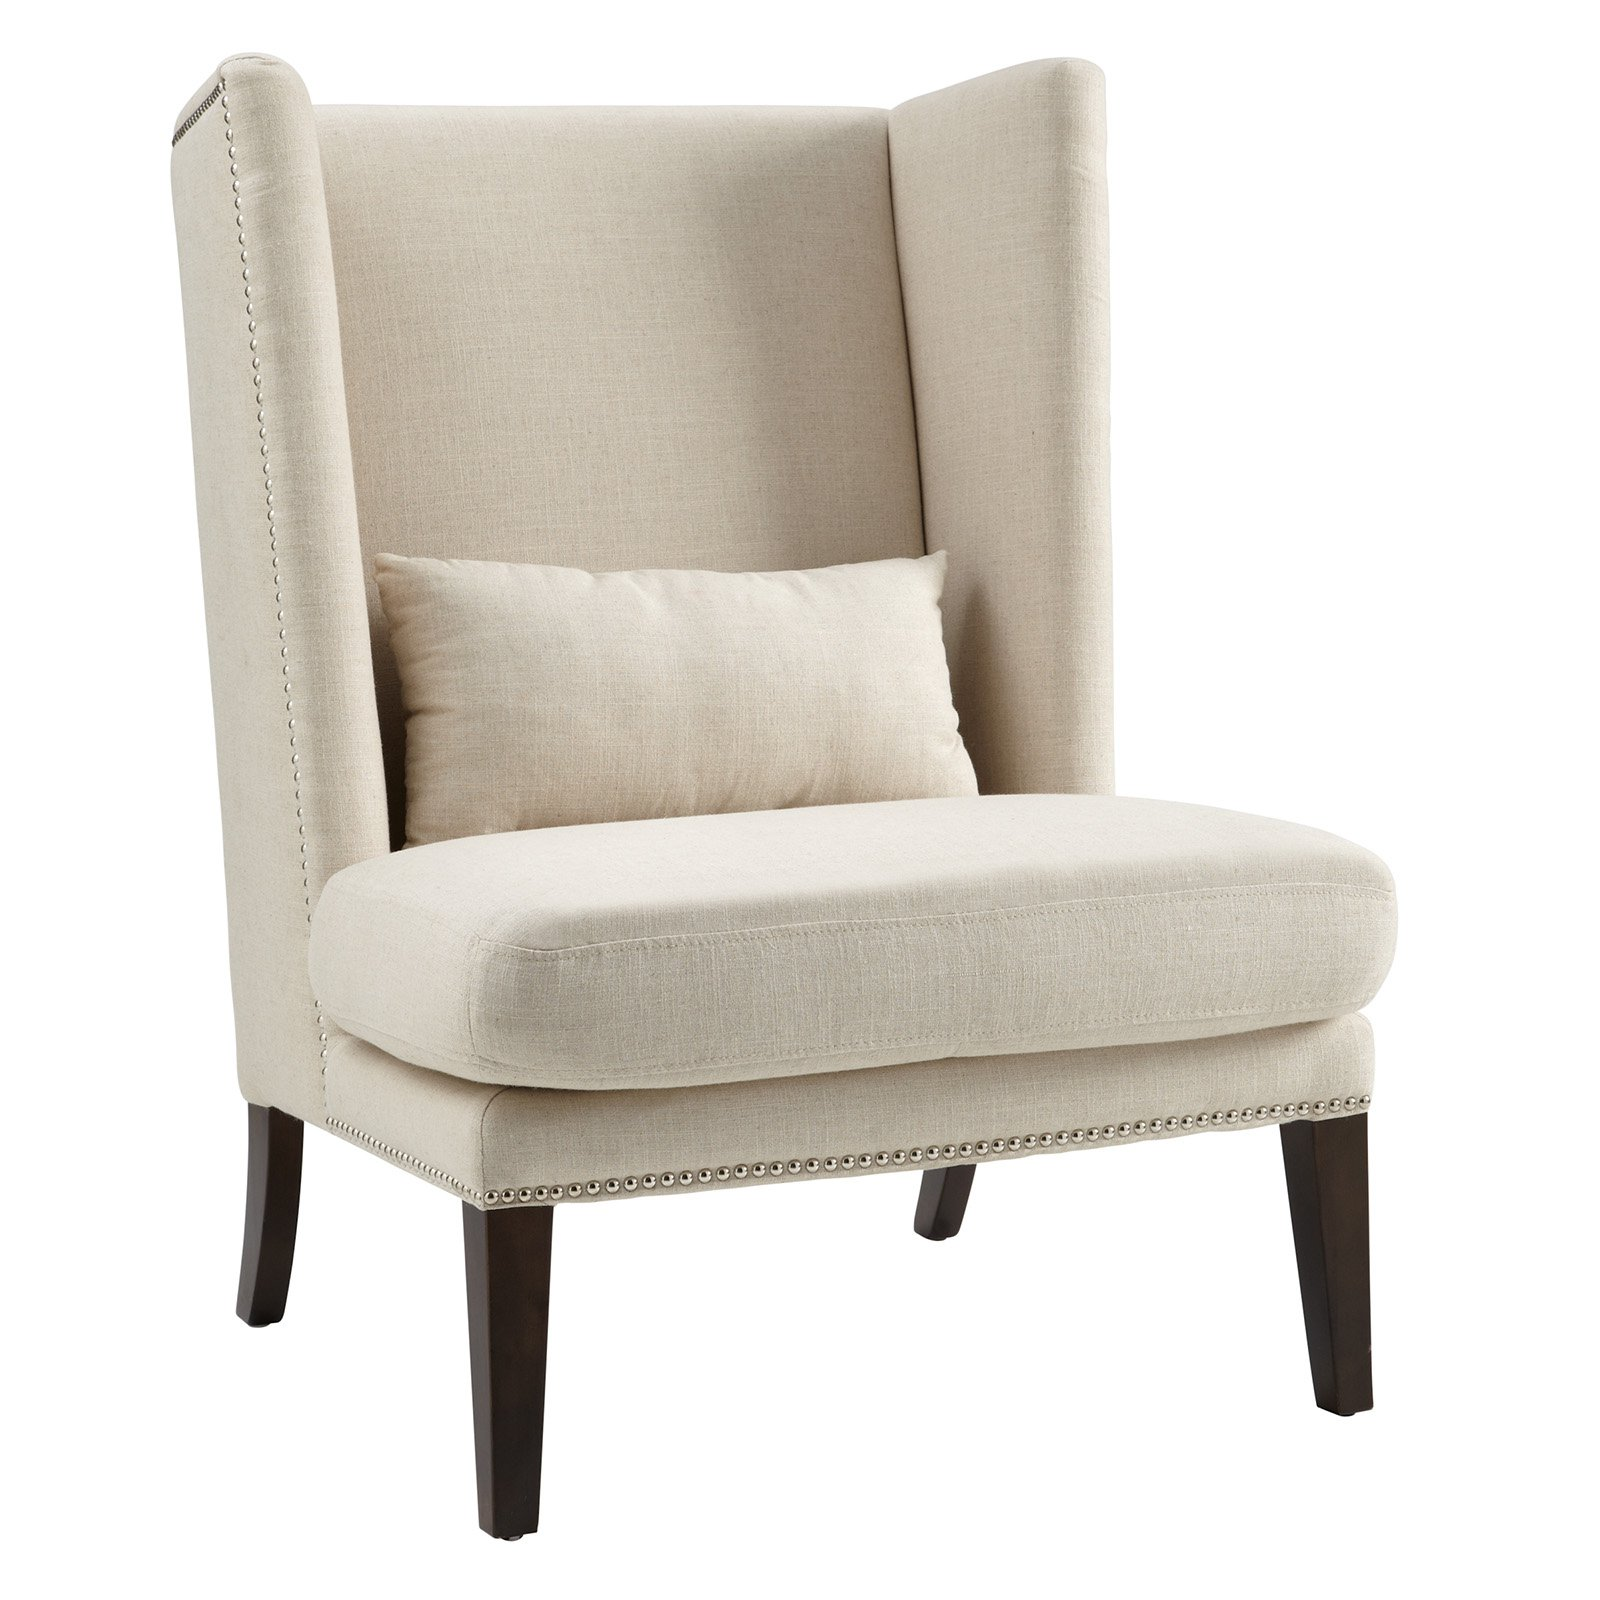 Sunpan Malibu Linen Wingback Chair Linen wingback chair